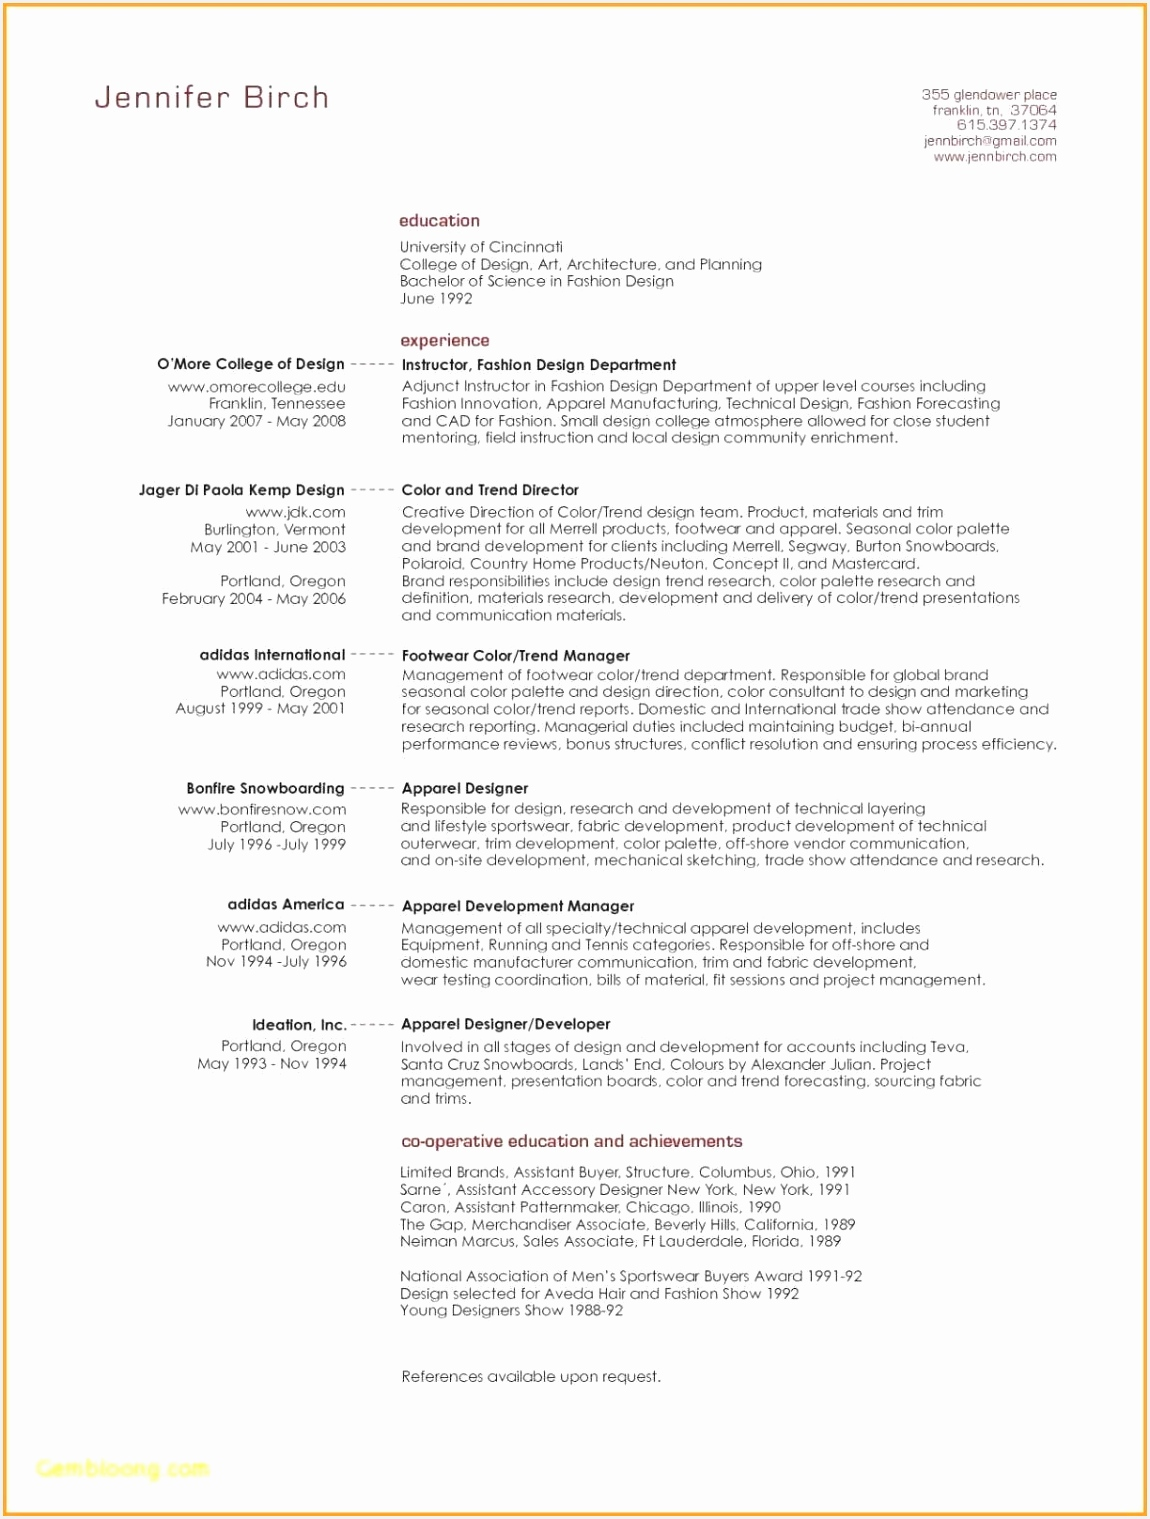 A Sample Resume Inspirational Resume Samples Skills Unique Bsw Resume 0d Sample Resume Resume 151911508hkhh